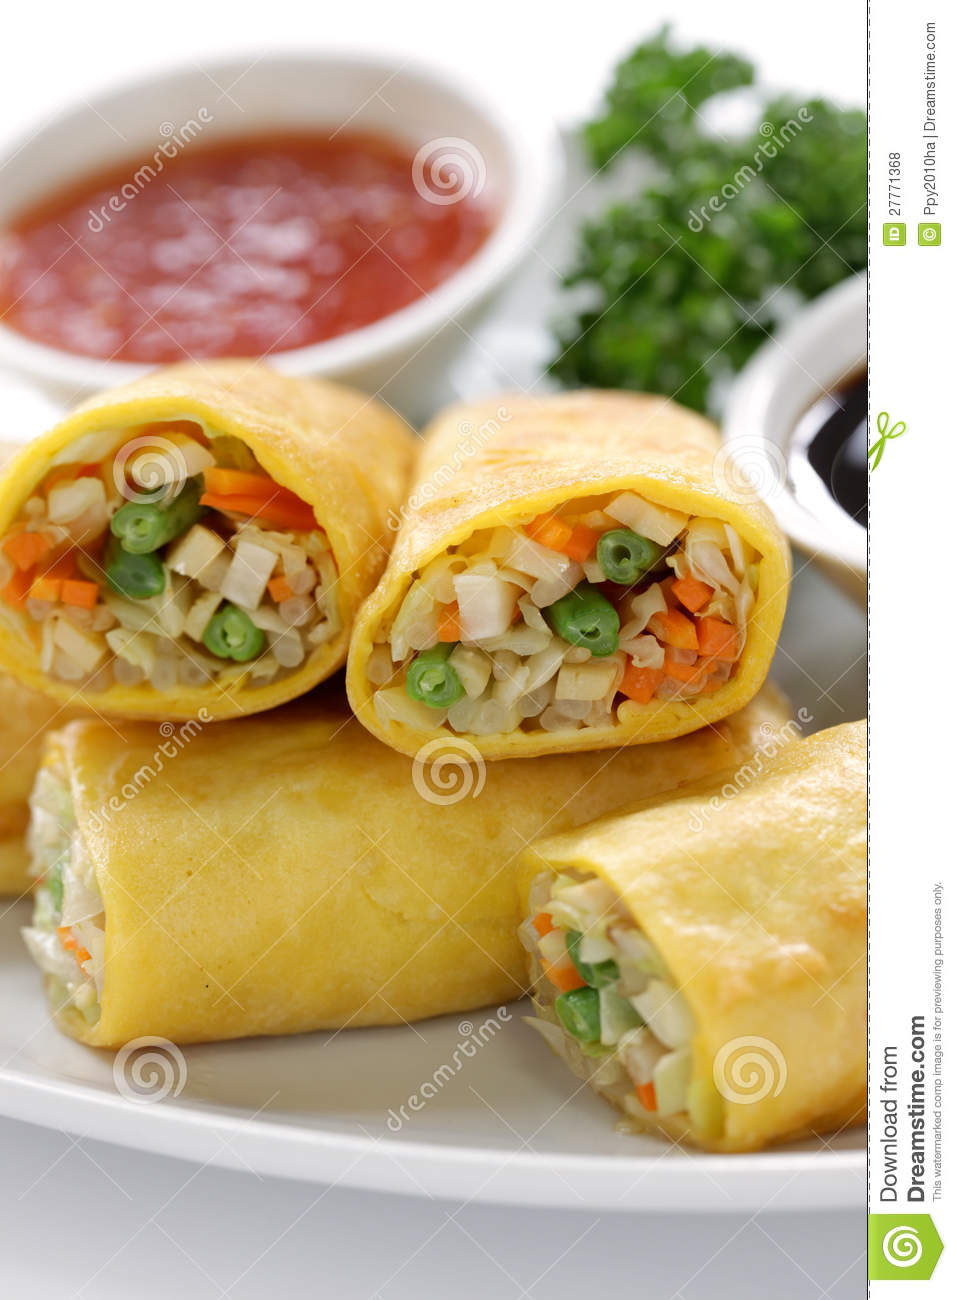 Homemade vegetarian egg rolls on a white background Vegetarian Egg Rolls